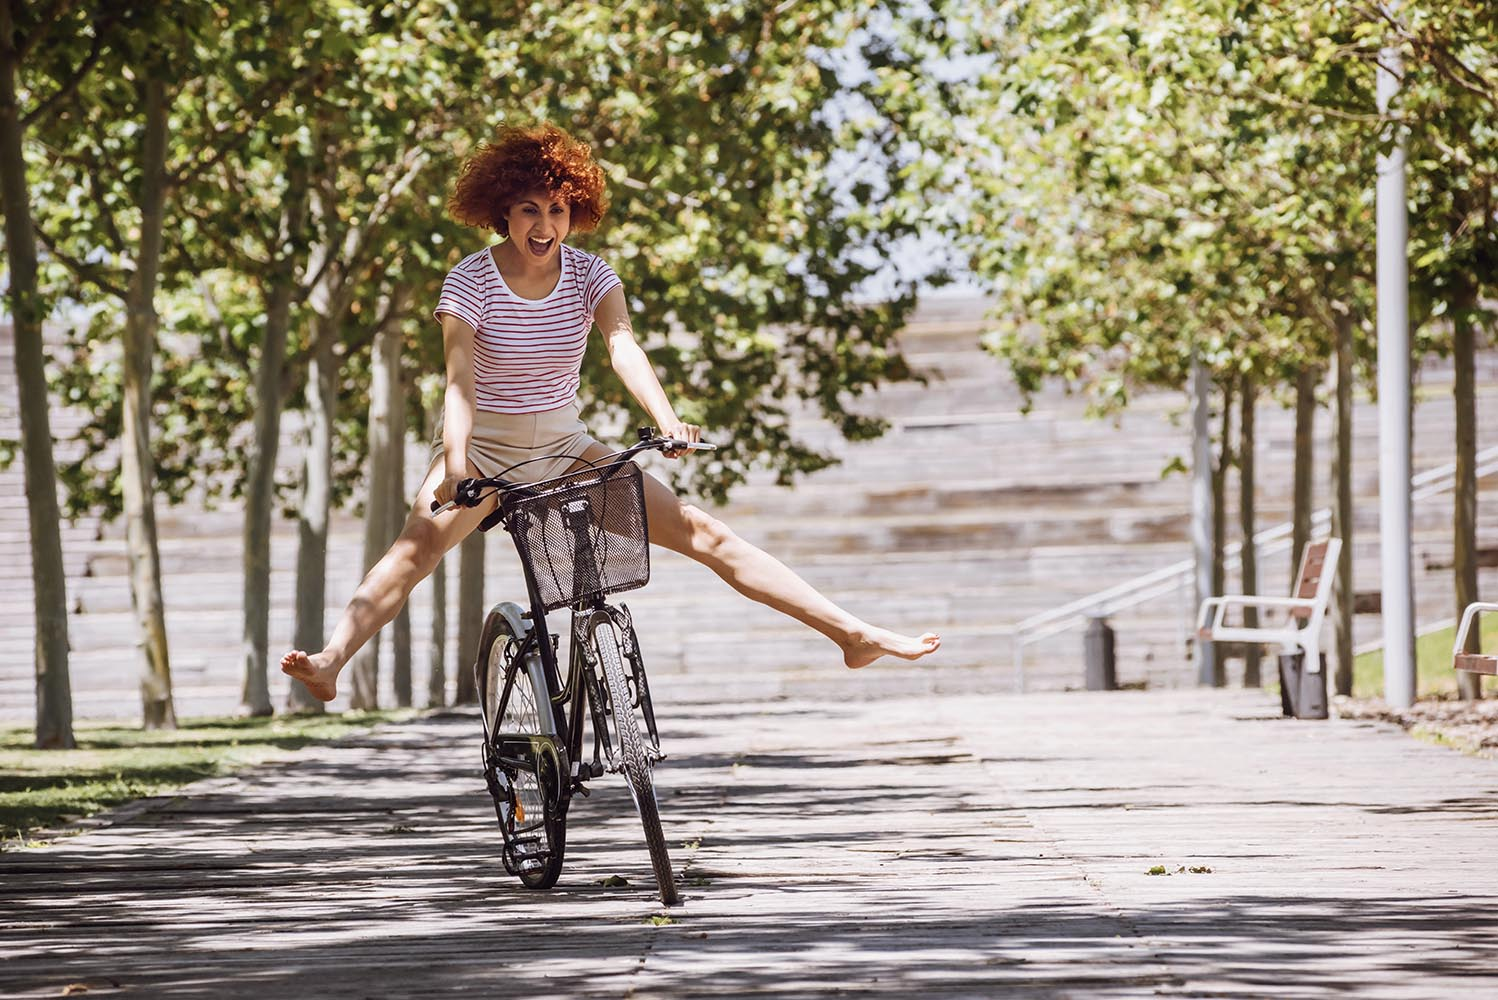 Cheerful girl riding a bike down the street